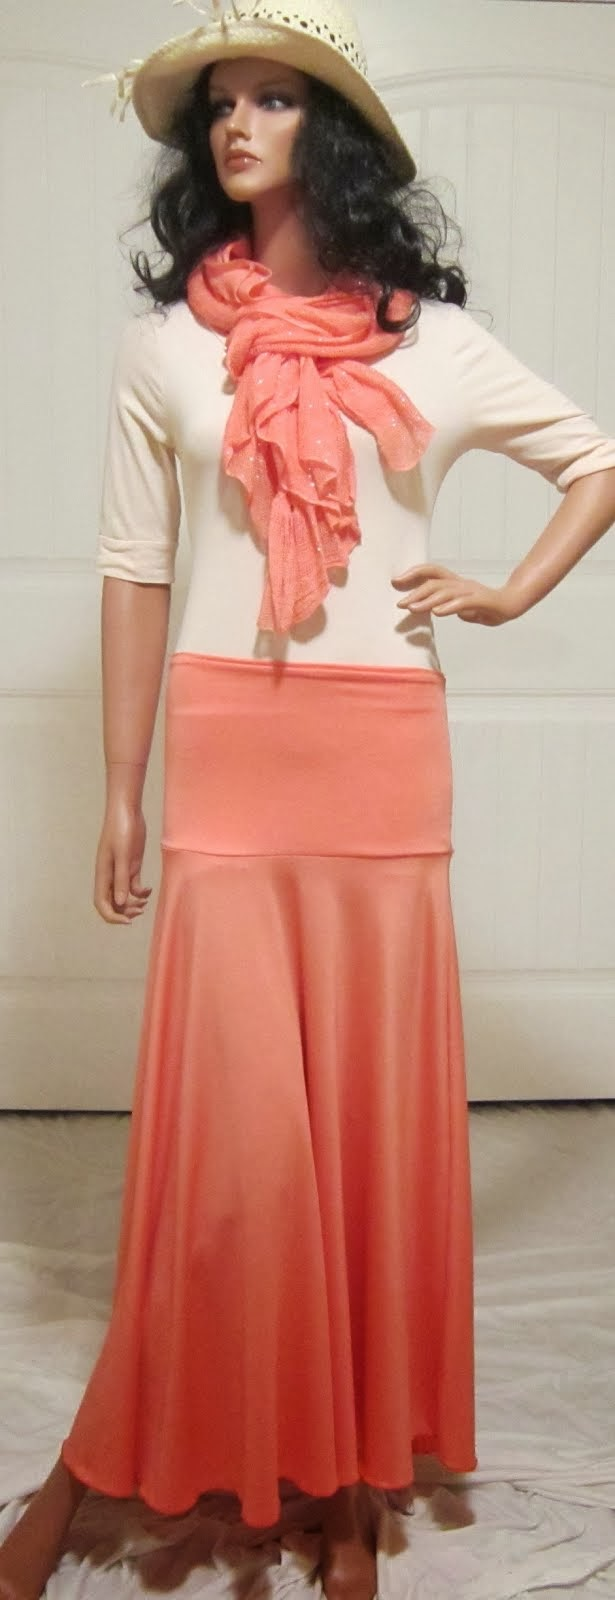 Solid Peach Stretch Knit Jersey Maxi